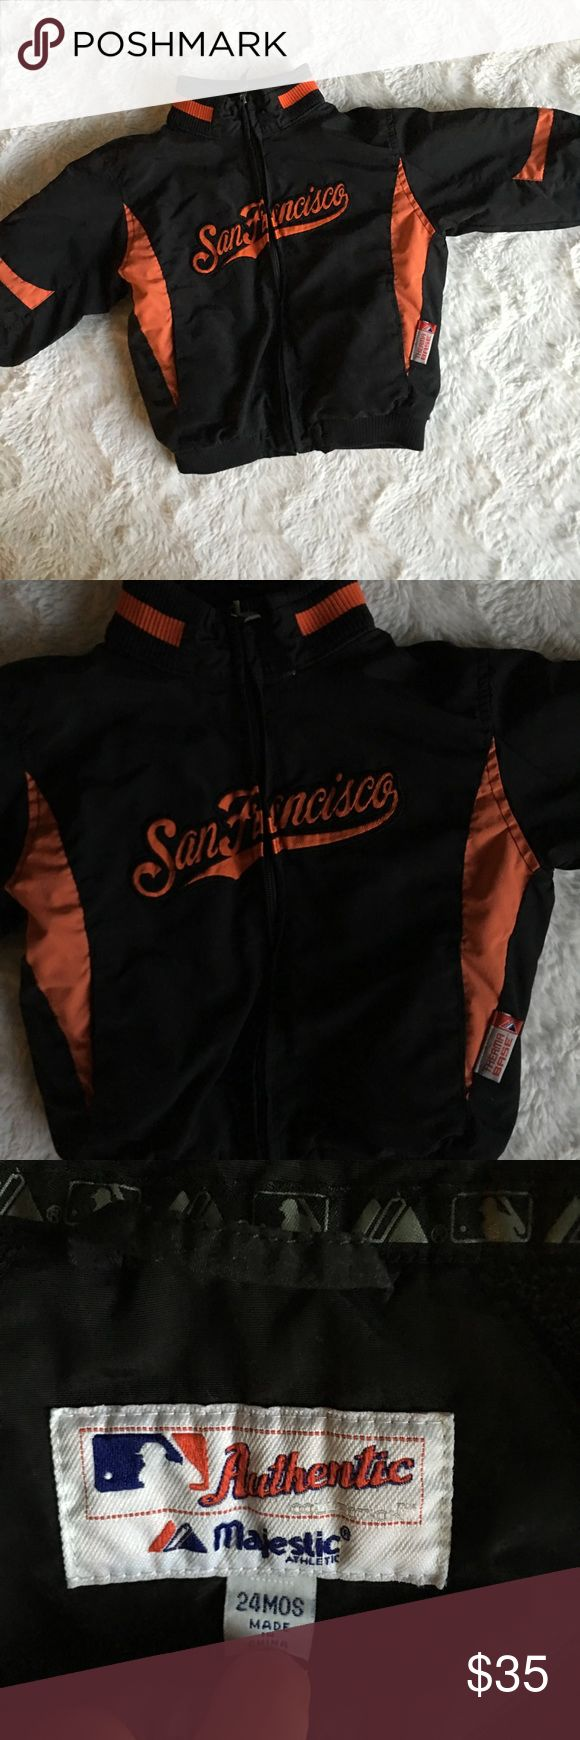 SF Giants Toddler Jacket My granddaughter used it only time only. All items are honestly presented to the best of my knowledge, and are stored in a non-smoking environment. Item is in great condition unless noted. No returns  Please view listing pictures & additional questions are always welcomed. Majestic Jackets & Coats